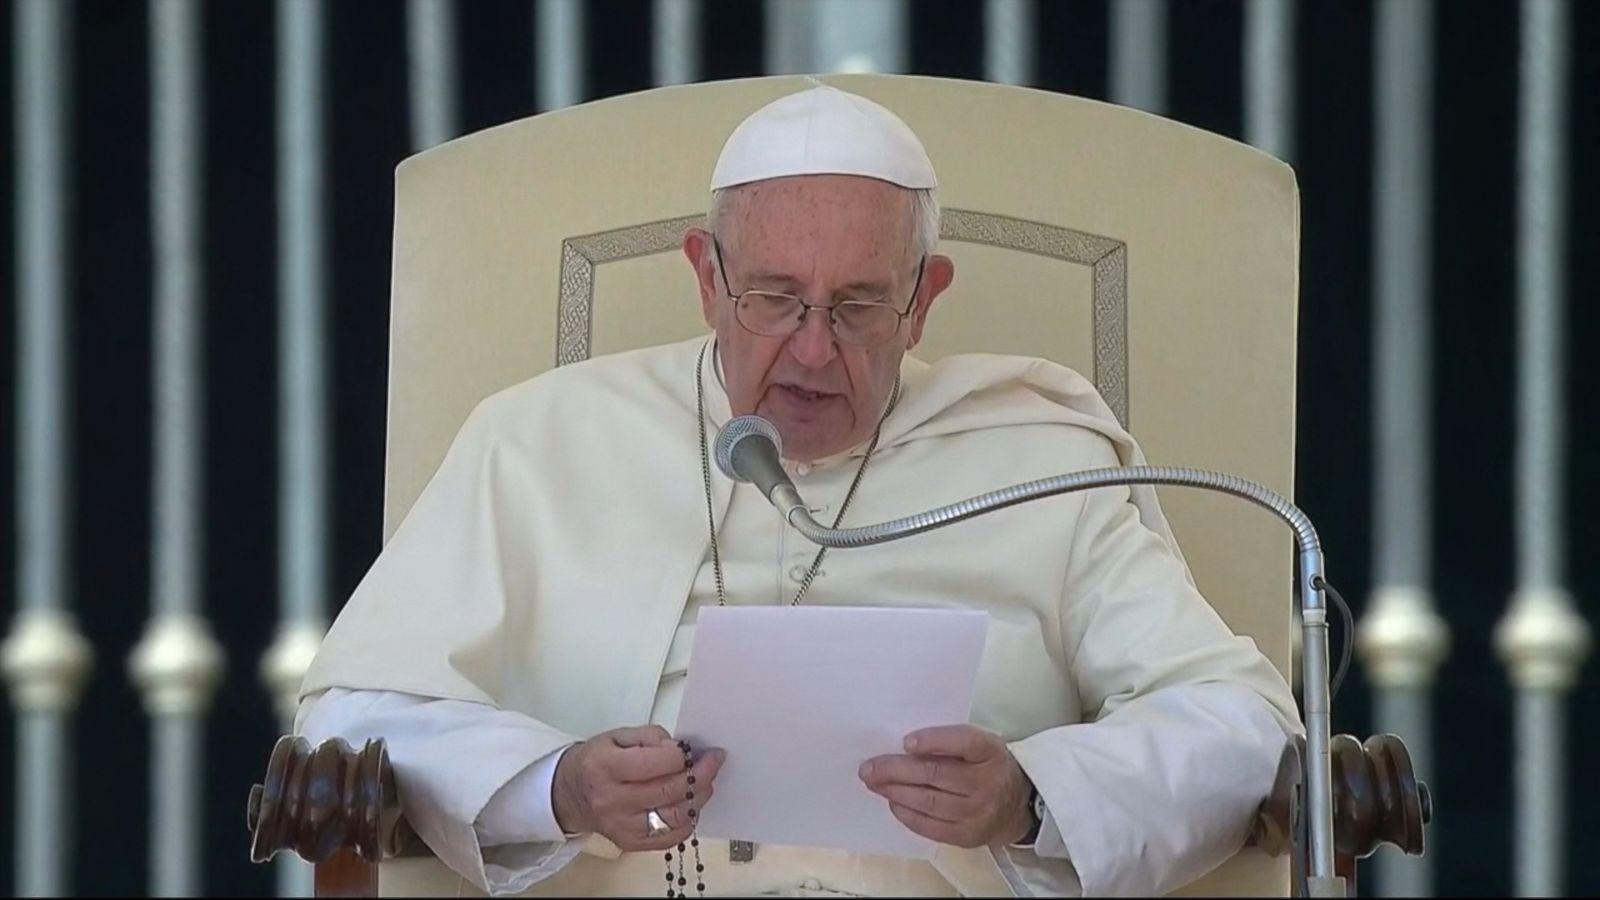 Pope Francis replaced his weekly catechesis in St. Peter's Square with a heartfelt address on the unfolding tragedy after a severe earthquake struck central Italy early Wednesday.